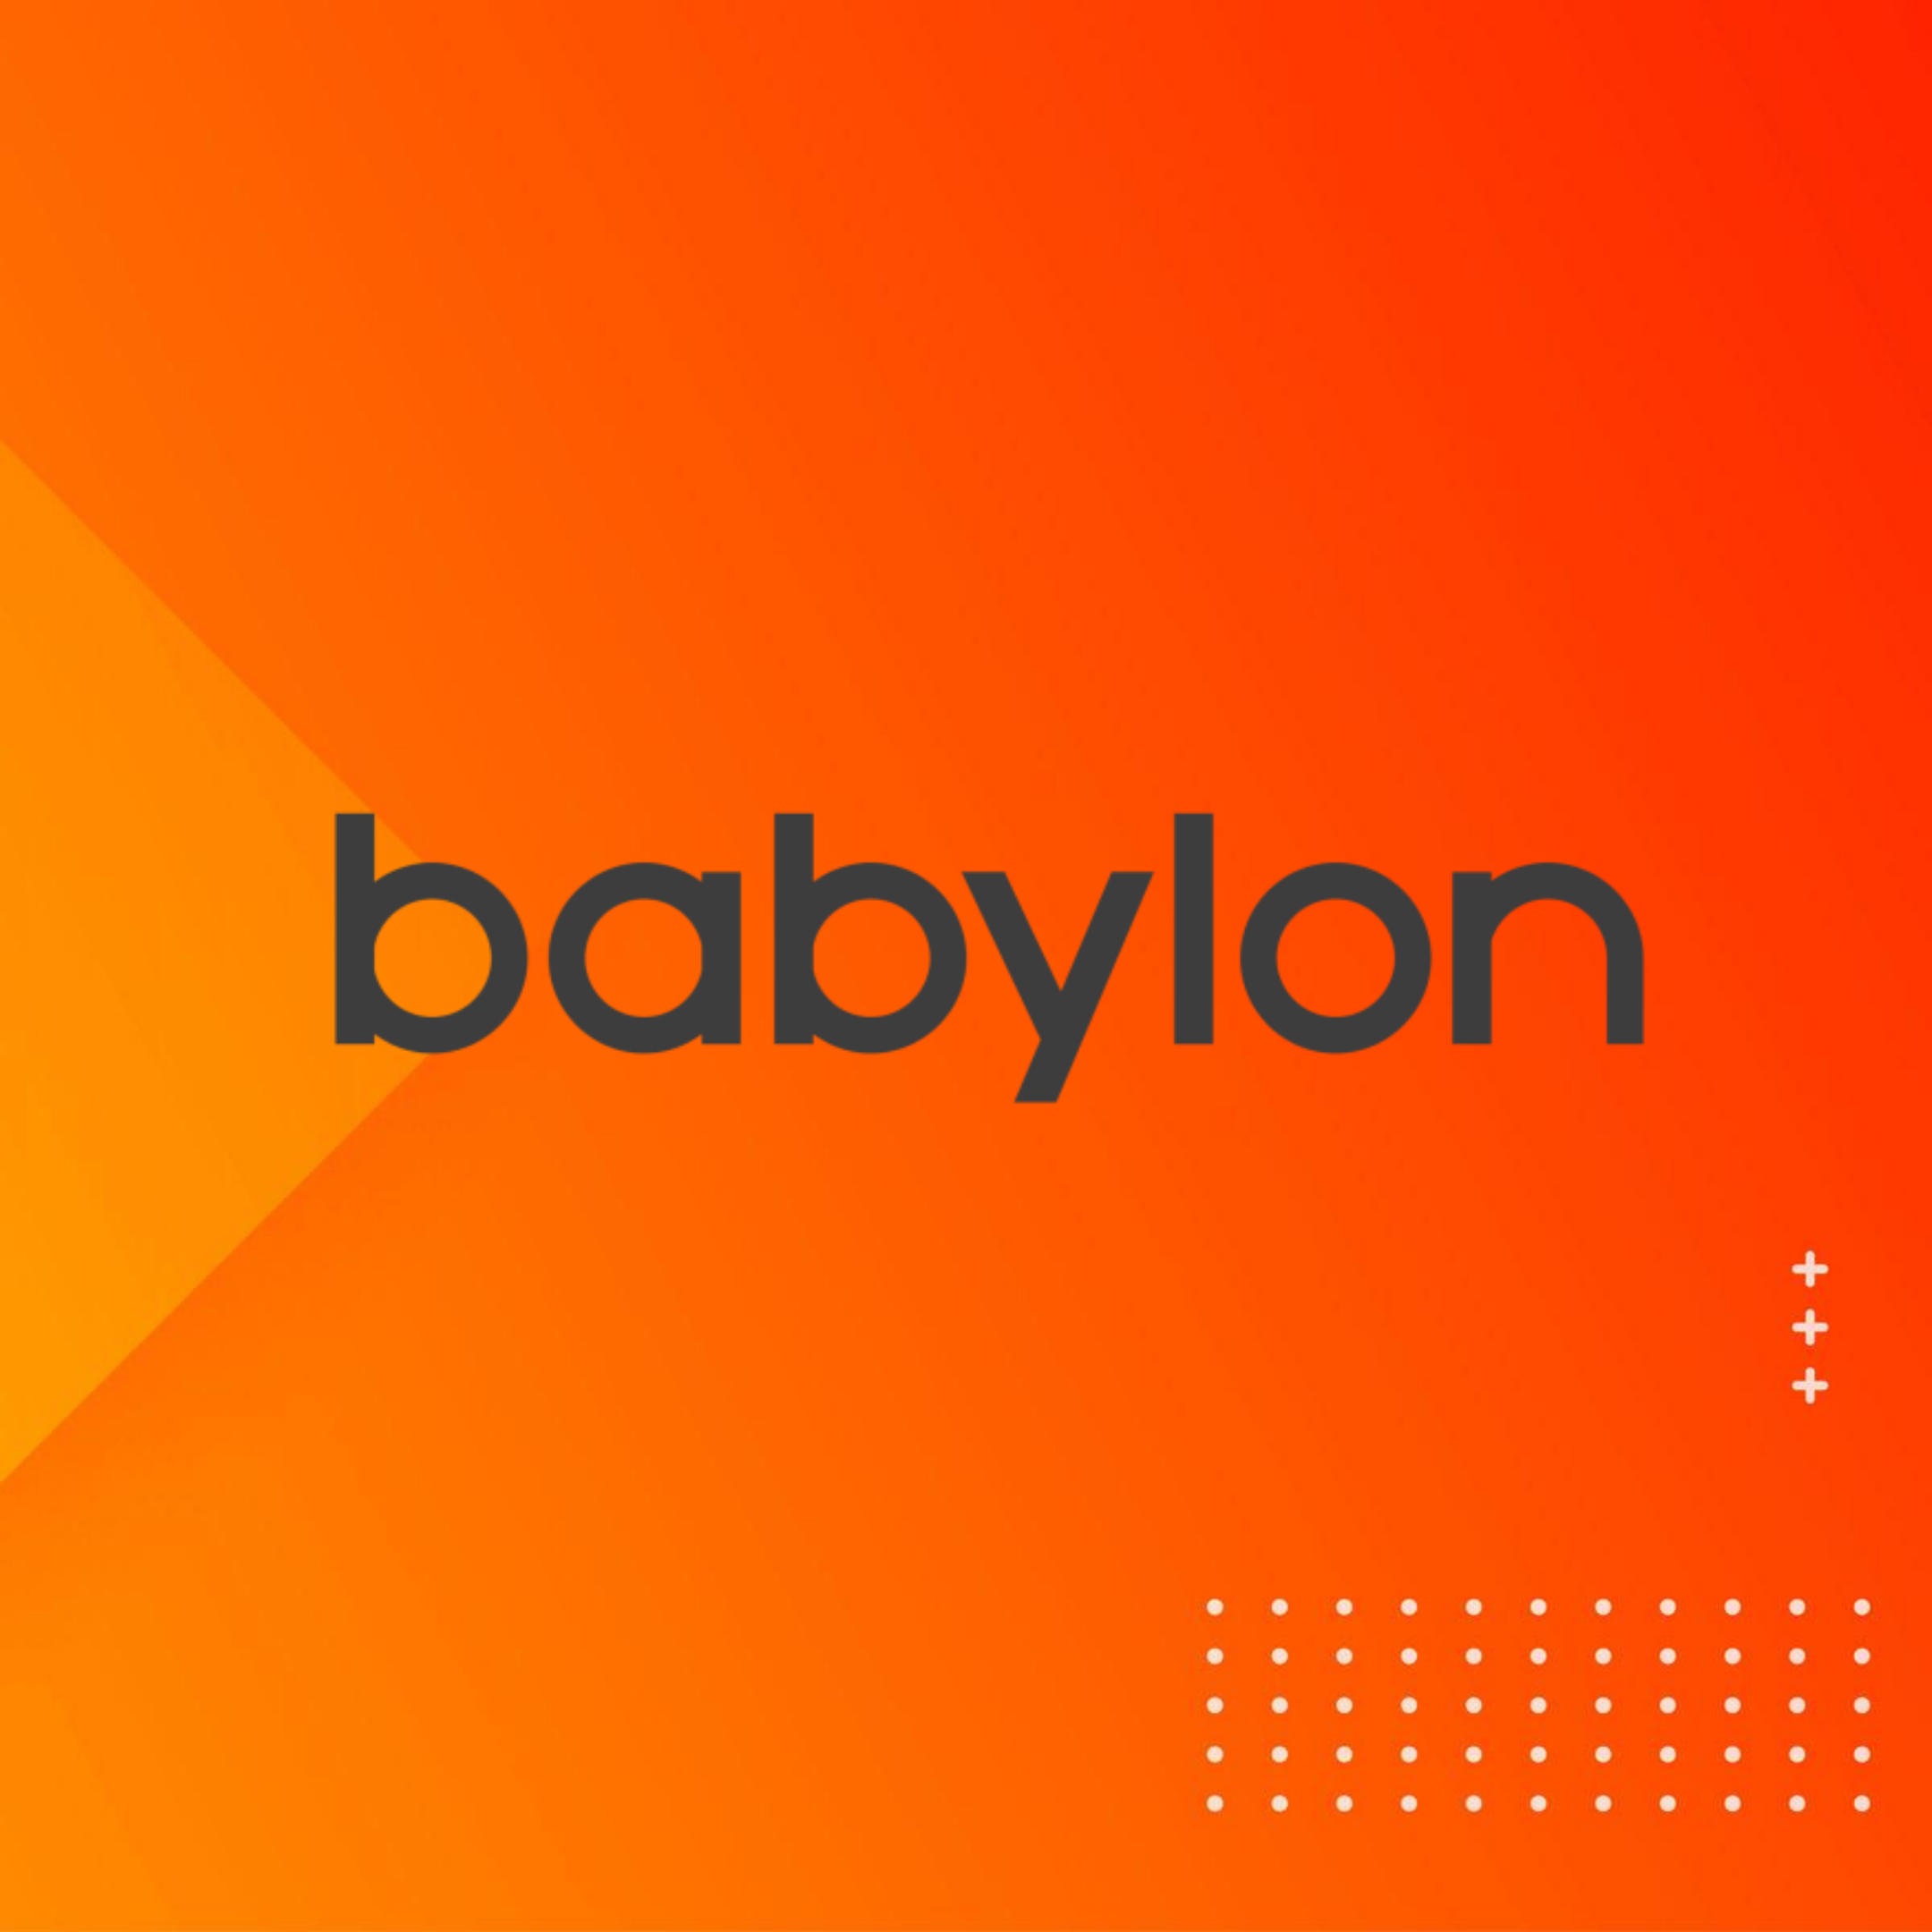 babylon - Sedulo Communications